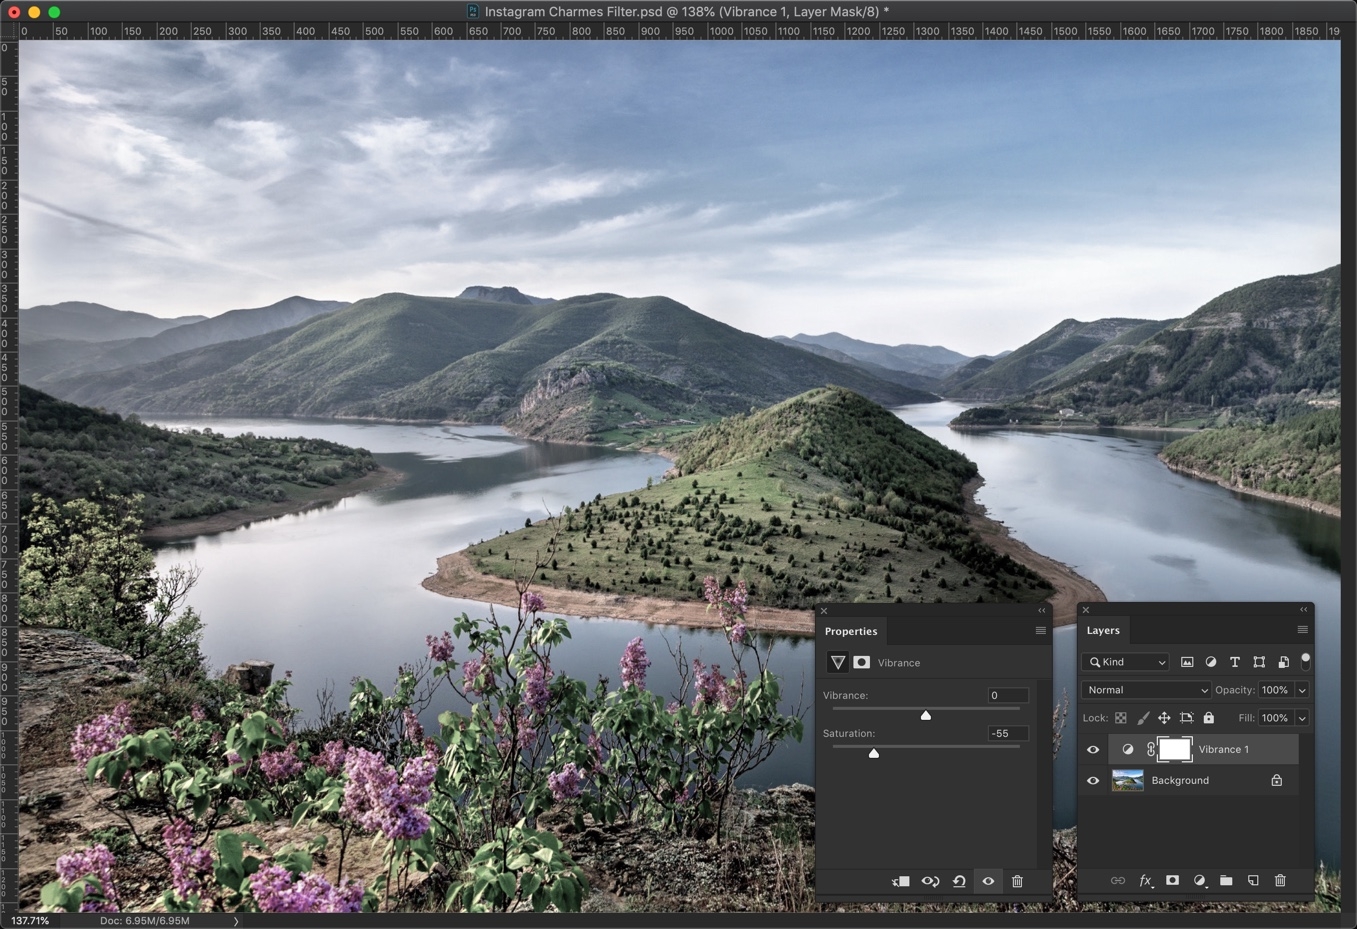 1-1 - Create Instagram Charmes Filter in Photoshop [Action Included]